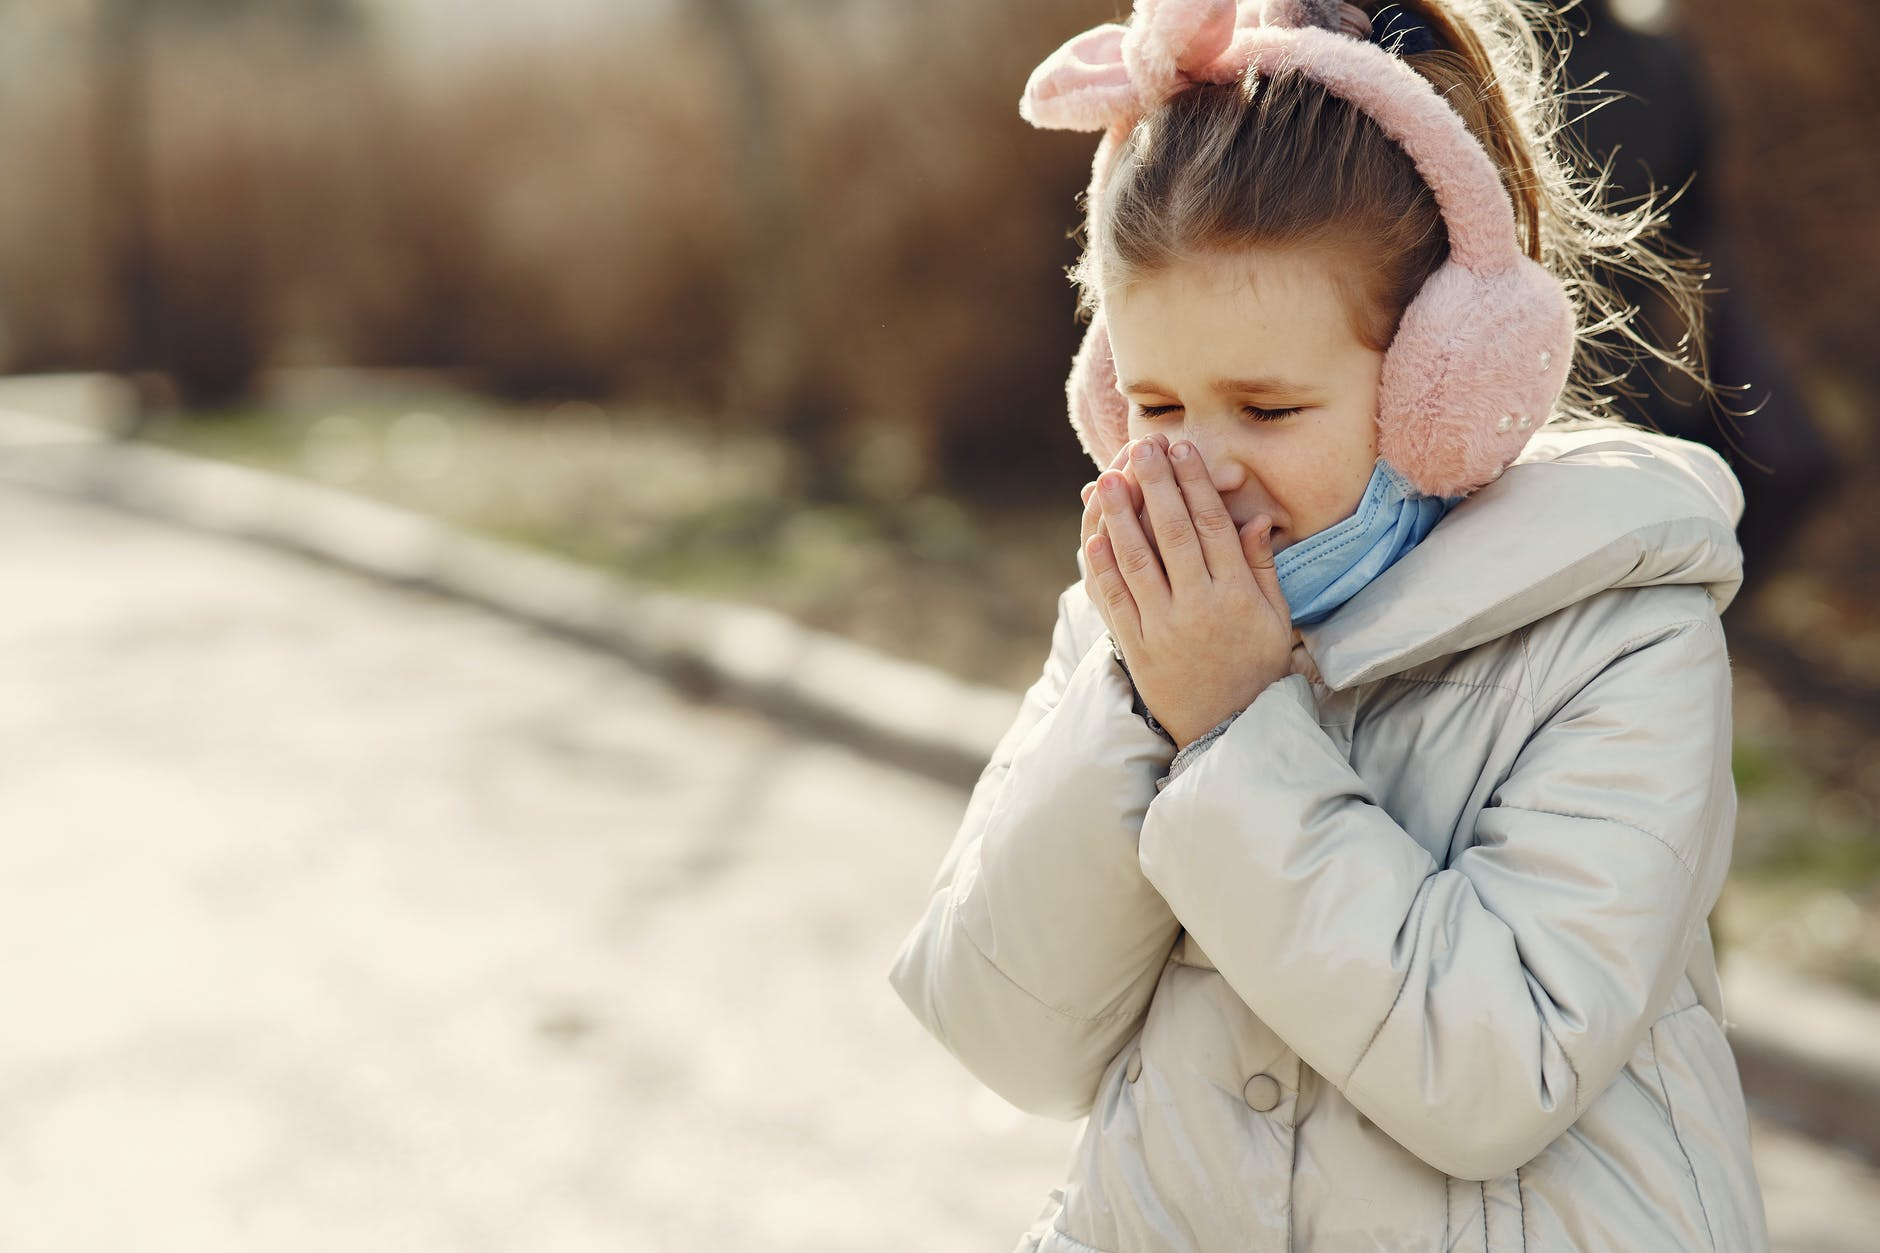 little girl sneezing while walking in park